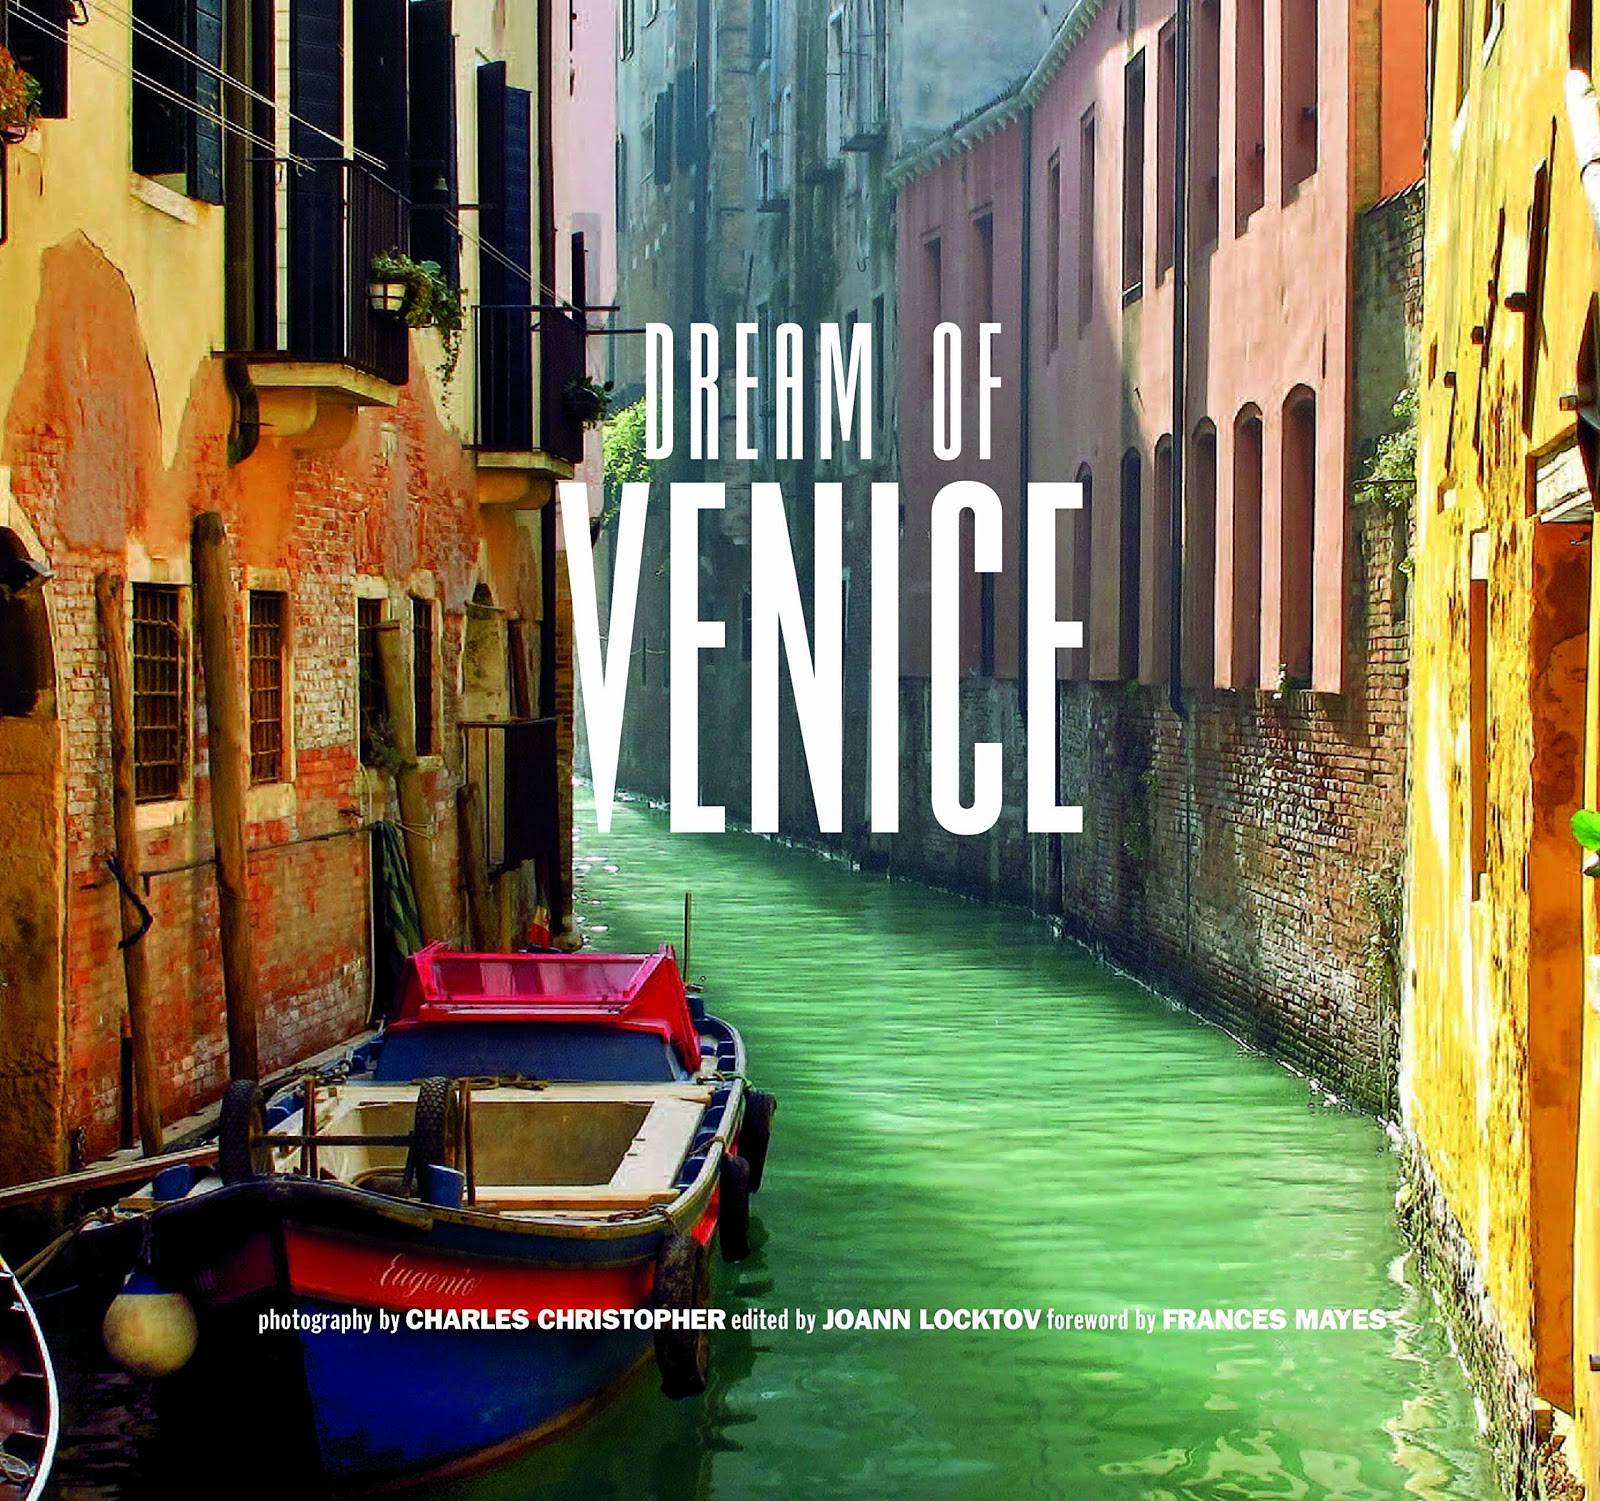 Click Book Cover to order Dream of Venice via Amazon U.S. - $20.01  Release date December 5, 2014